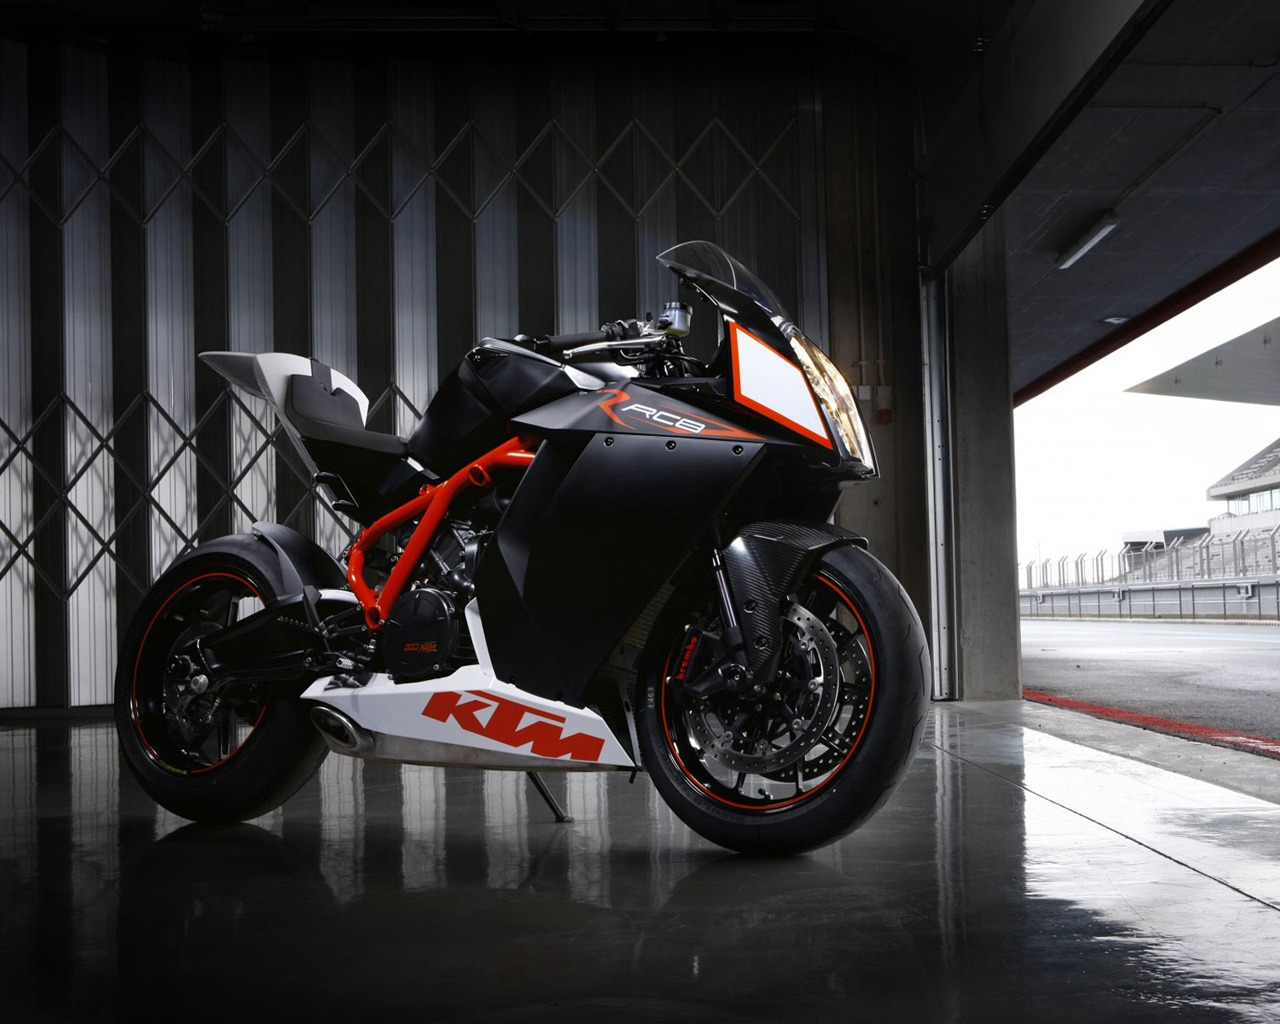 1280x1024 - KTM RC8 Wallpapers 17